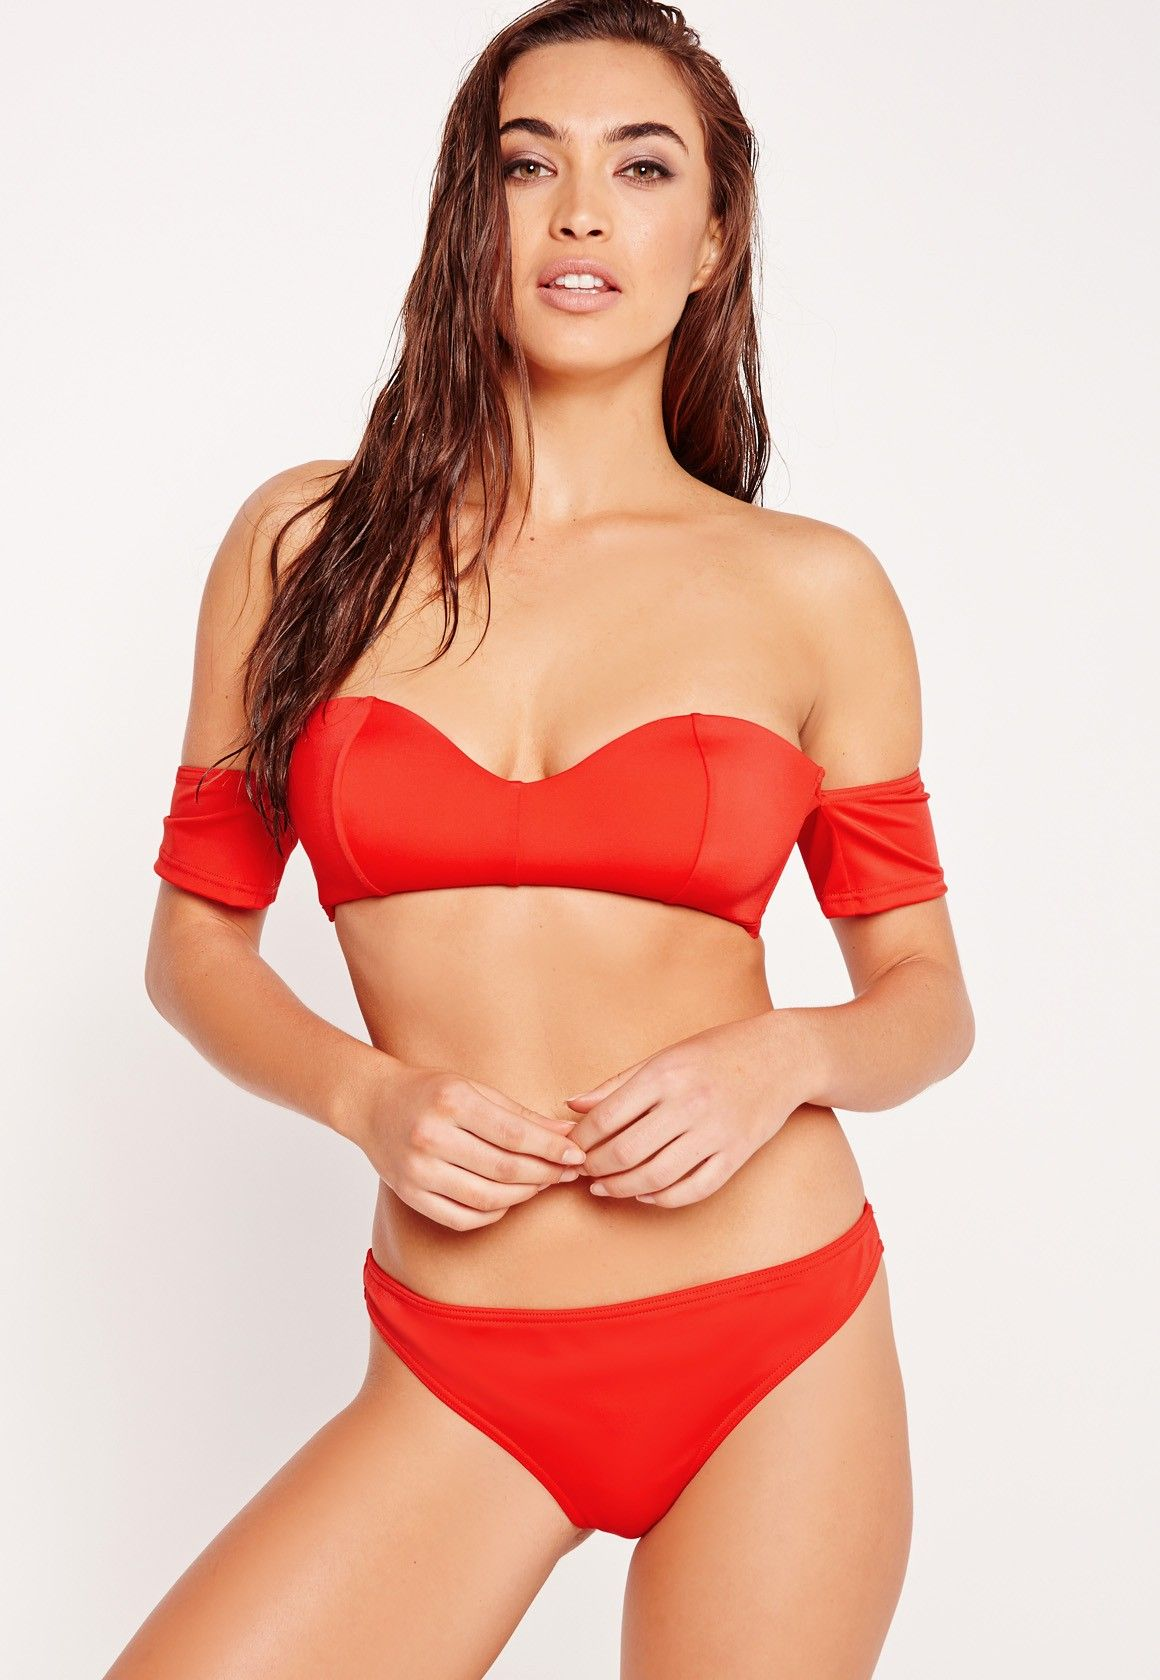 757bd47988871 A Bikini A Day x Missguided is our new collaboration with swimsuit blogger  babes Natasha Oakley   Devin Brugman! Look red hot on the beach in this  super ...